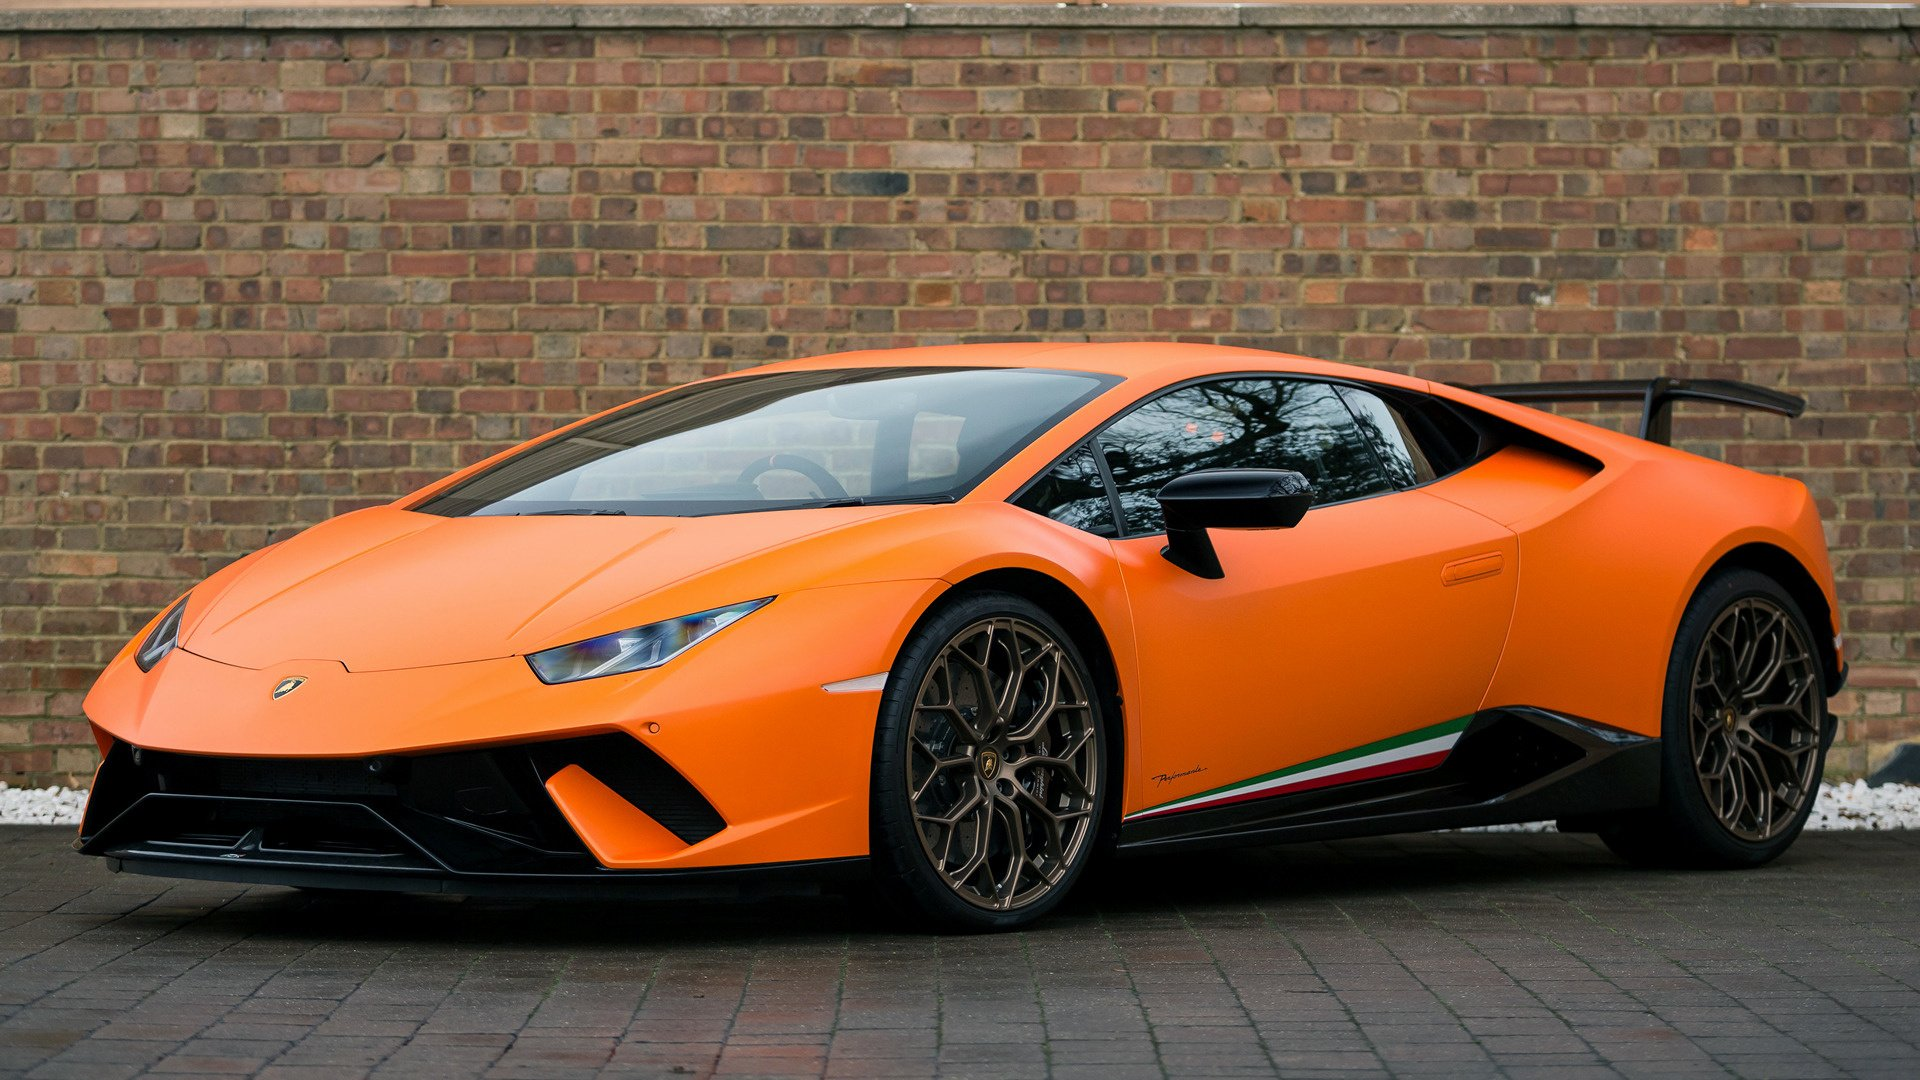 2017 Lamborghini Huracan Performante Hd Wallpaper Background Image